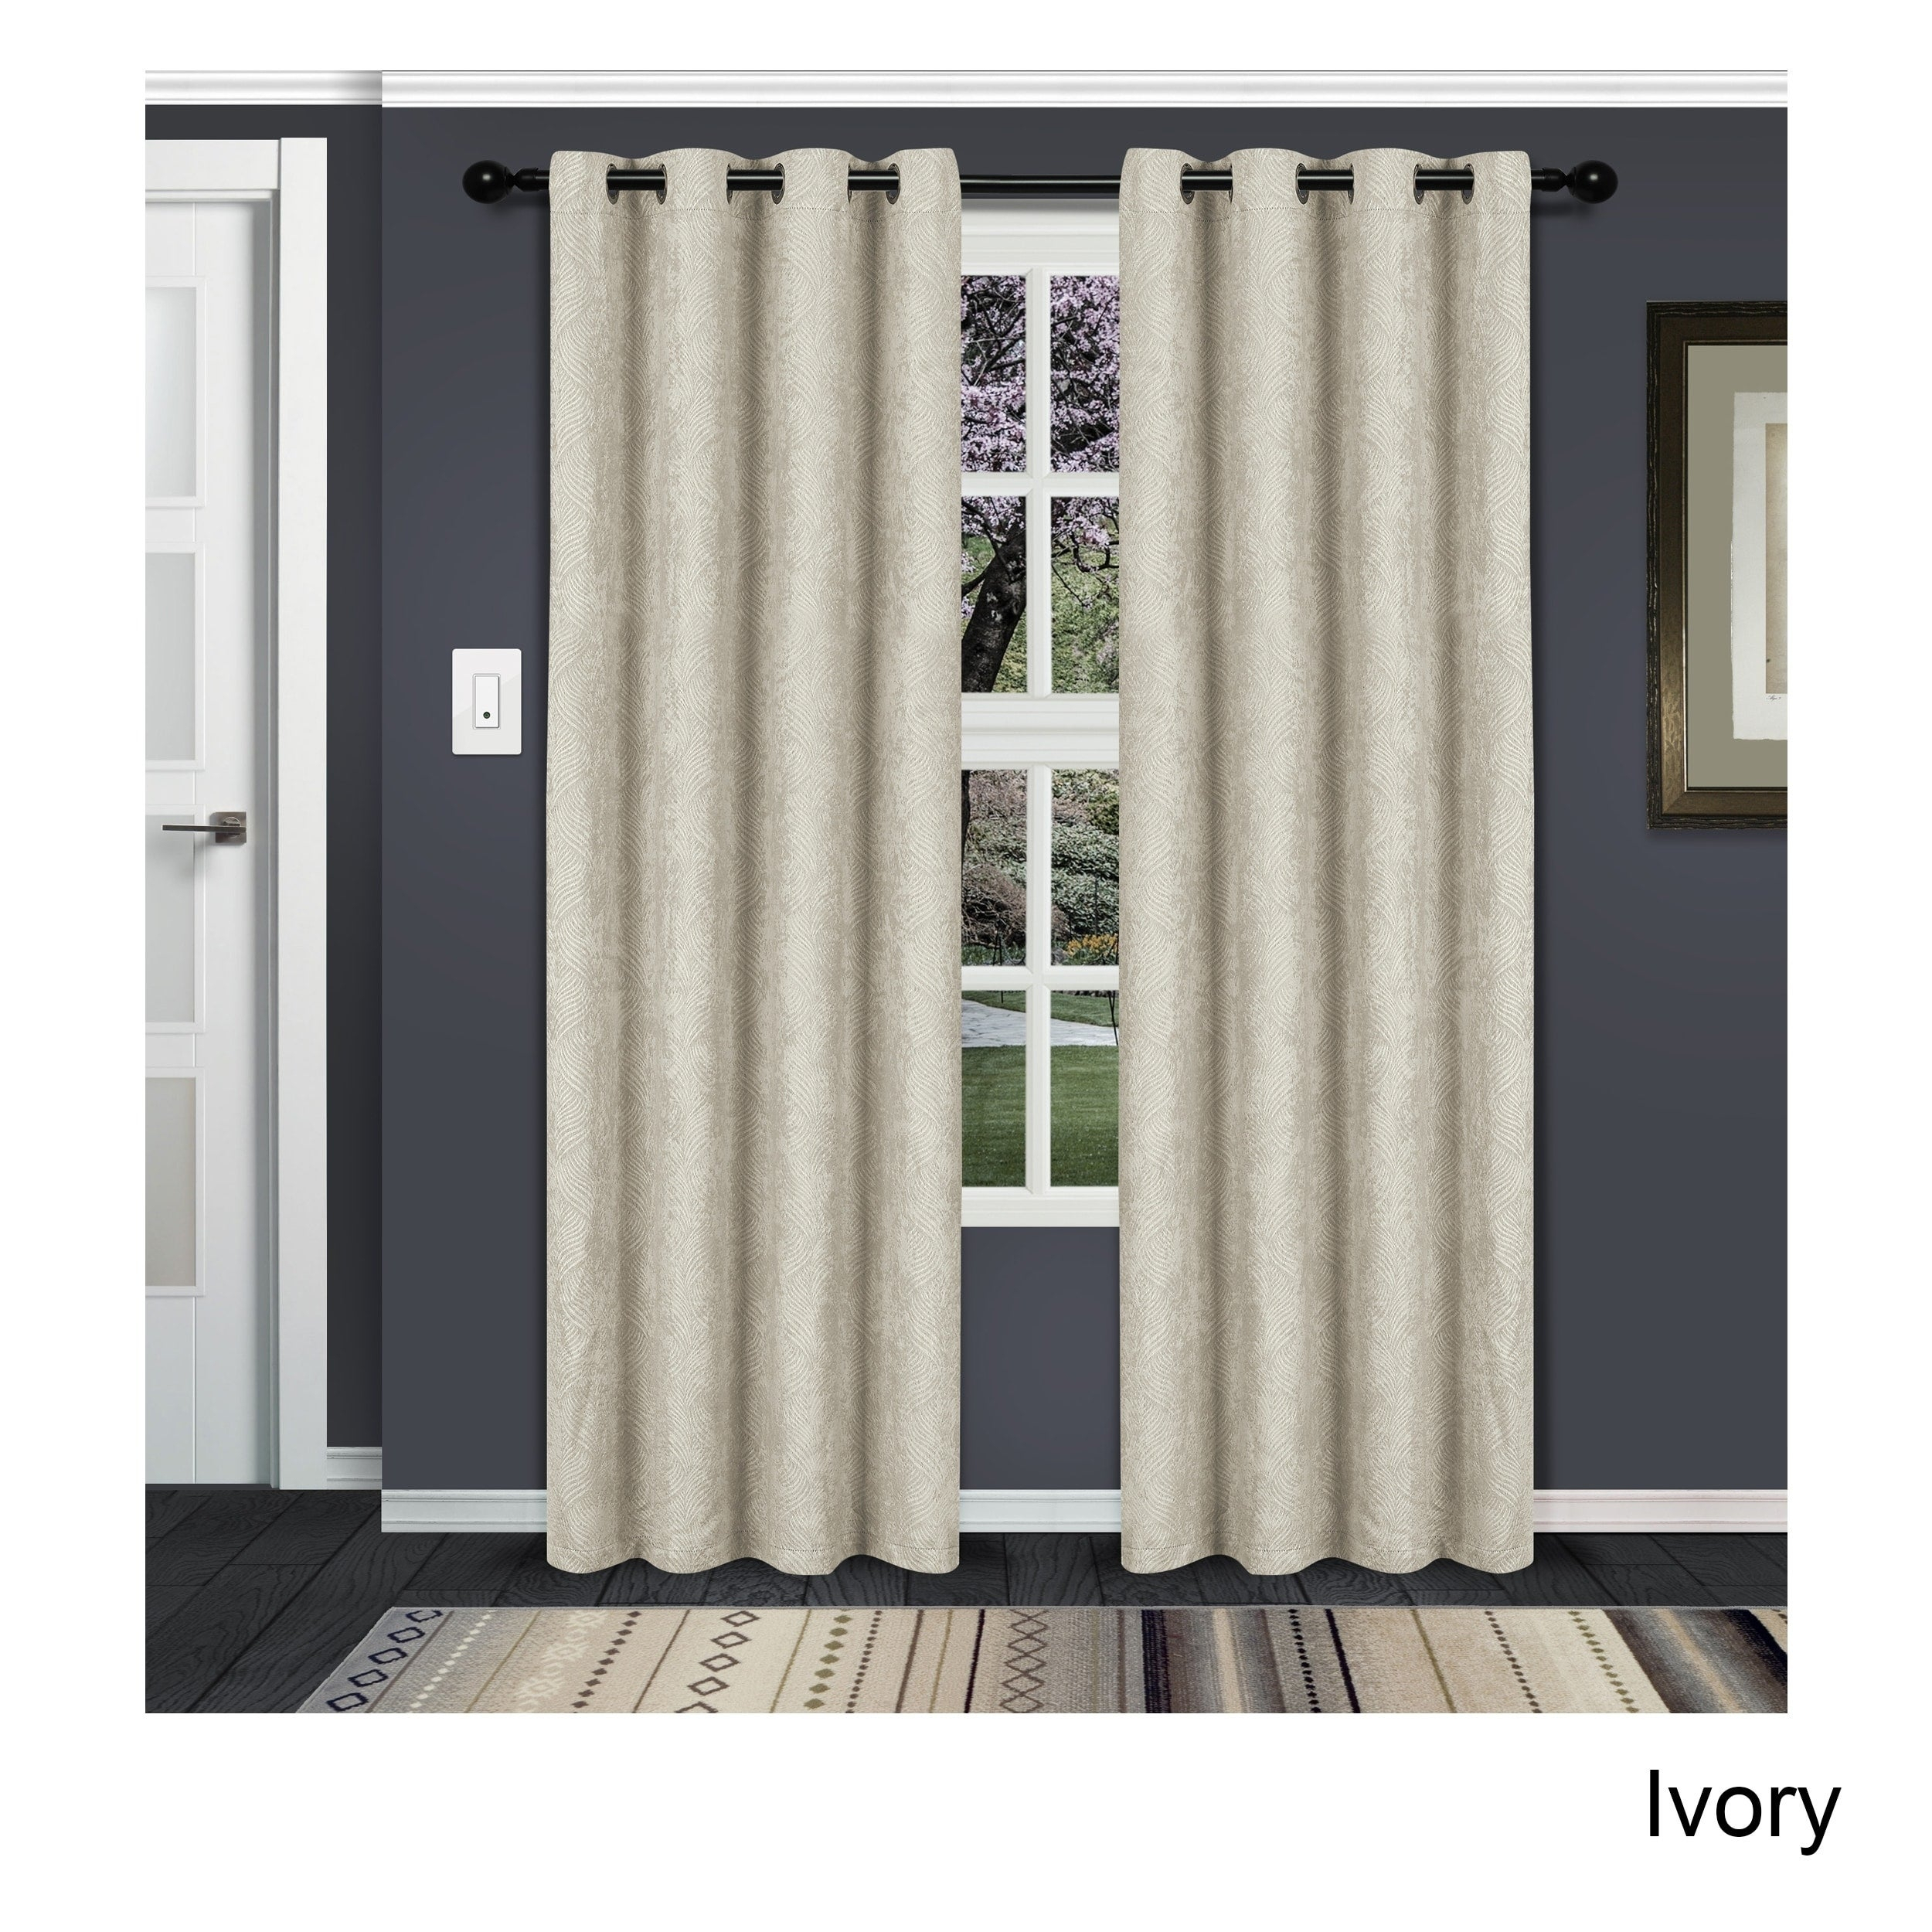 Superior Waverly Insulated Thermal Blackout Grommet Curtain Panel Pair Intended For Superior Solid Insulated Thermal Blackout Grommet Curtain Panel Pairs (View 14 of 30)